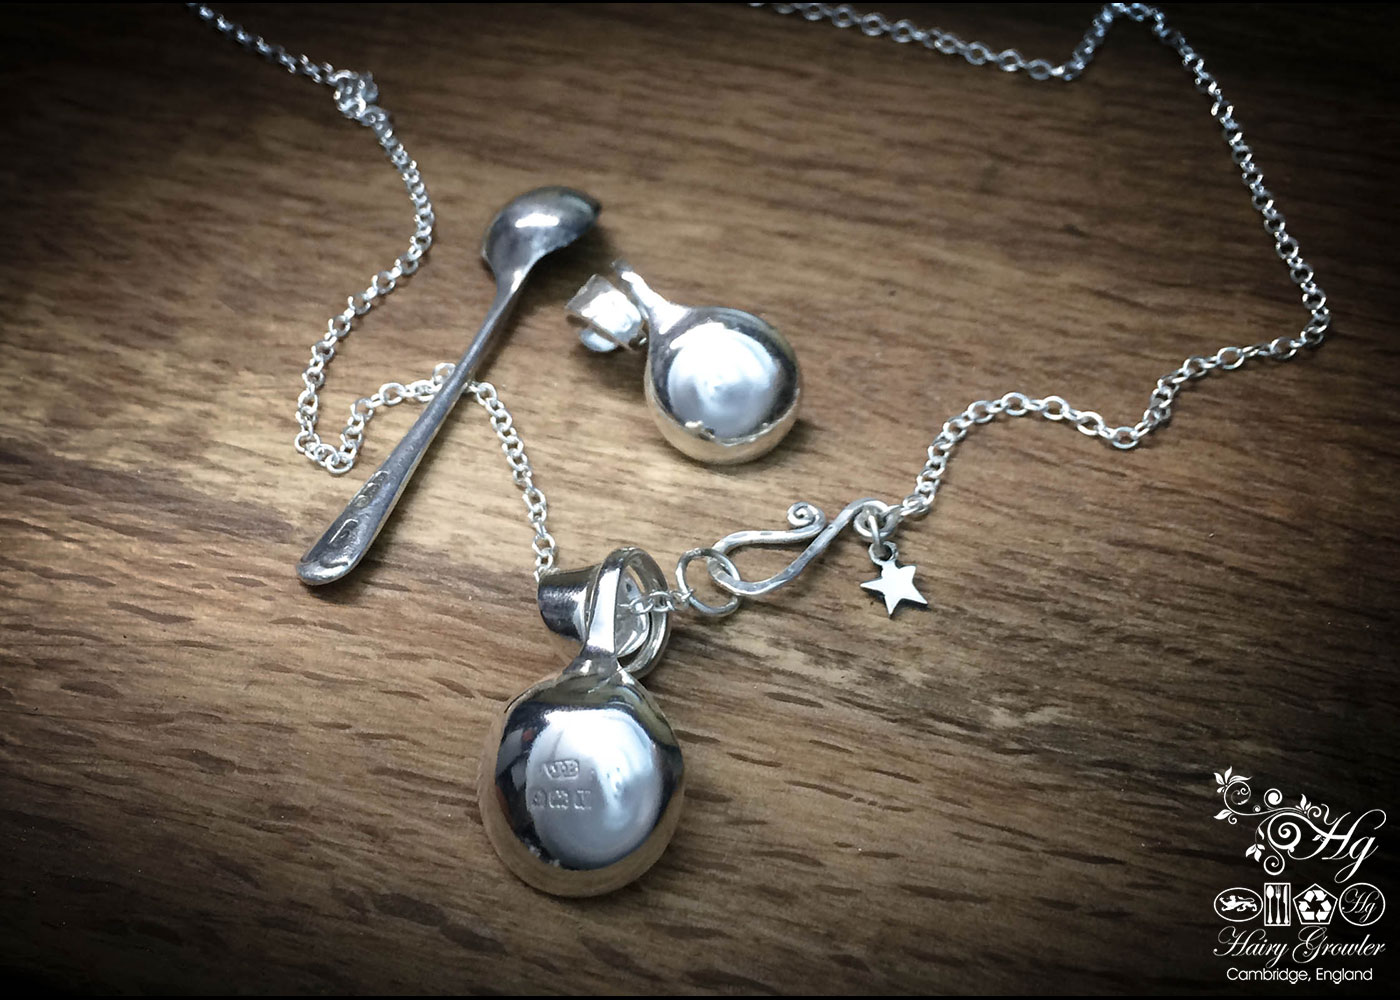 handcrafted and recycled sterling silver salt spoon necklace pendant